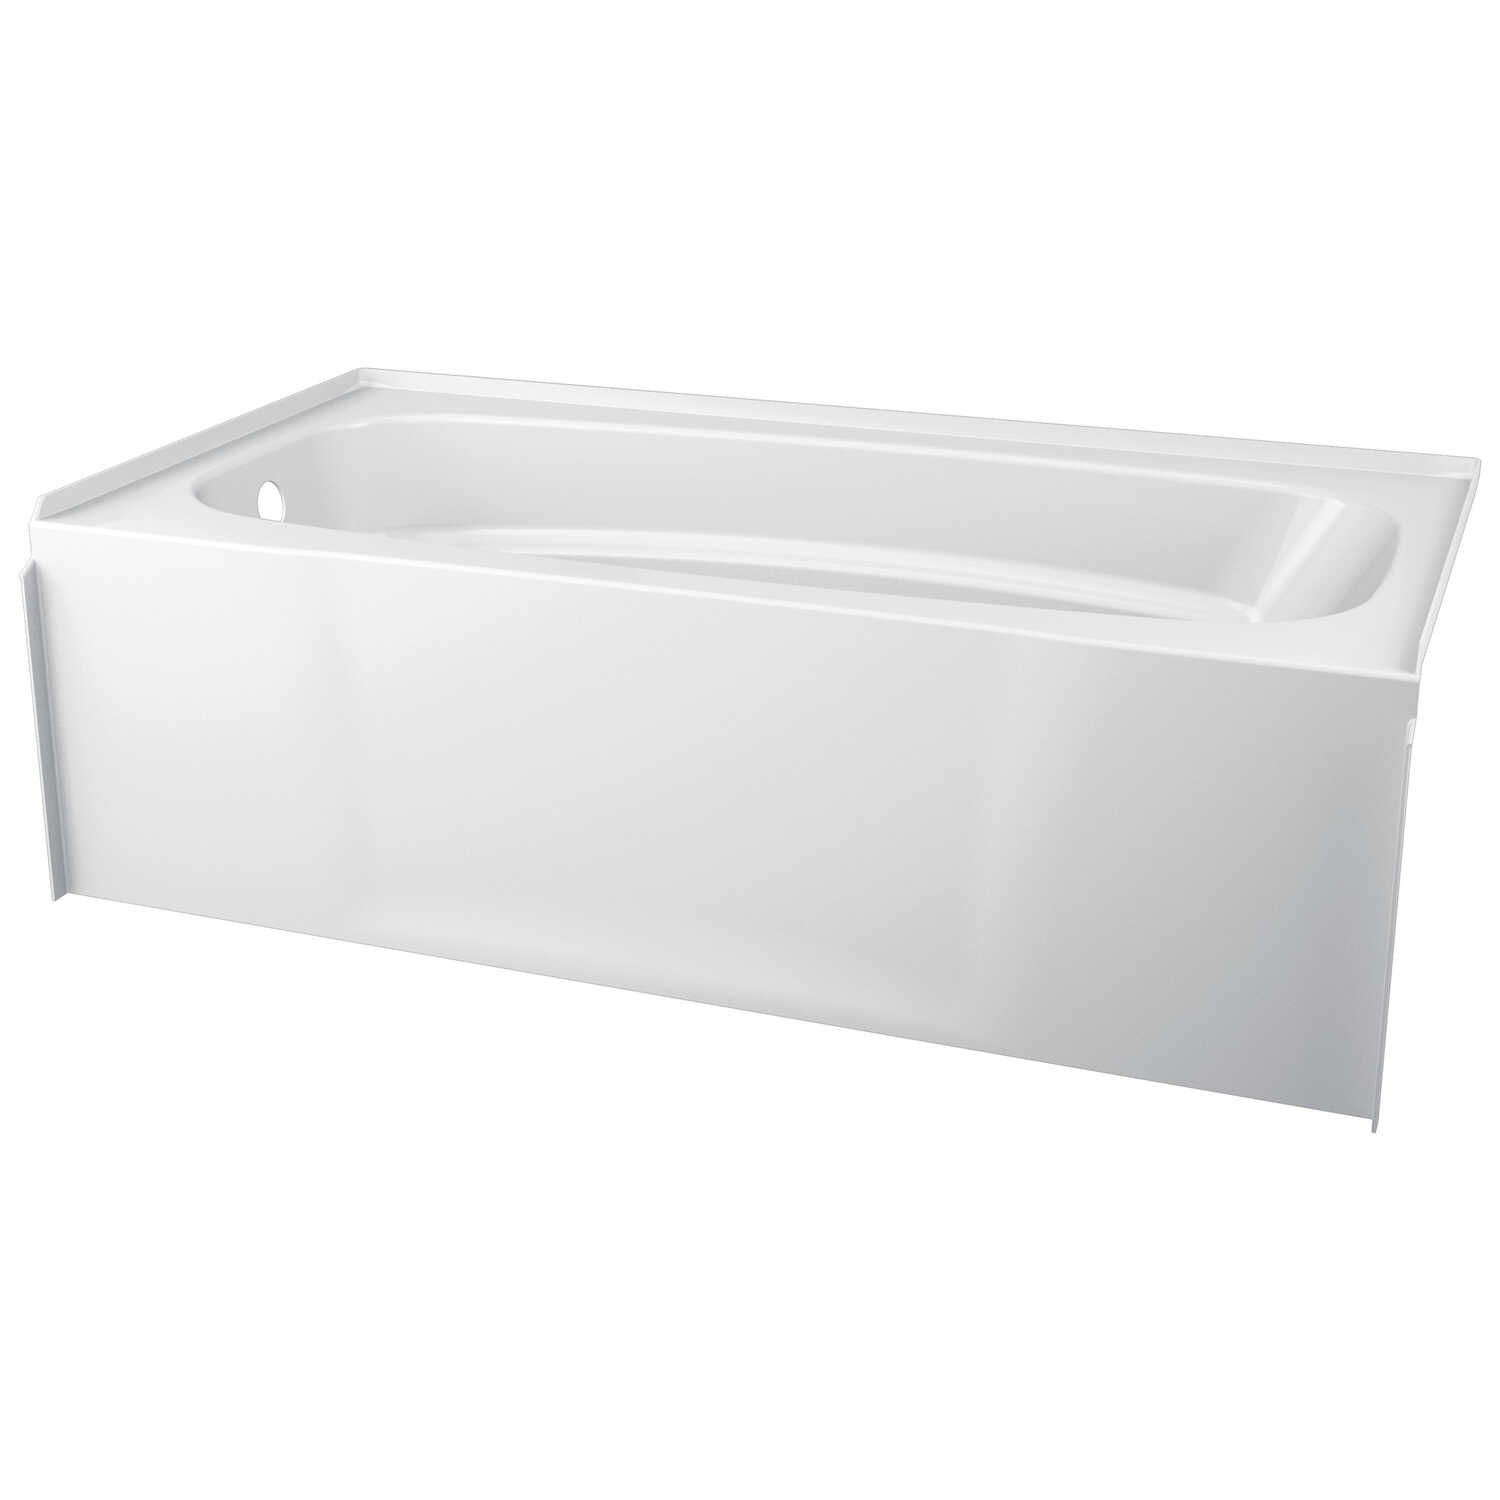 Delta  HyCroft  White  Bathtub  One Piece  Left  Rectangle